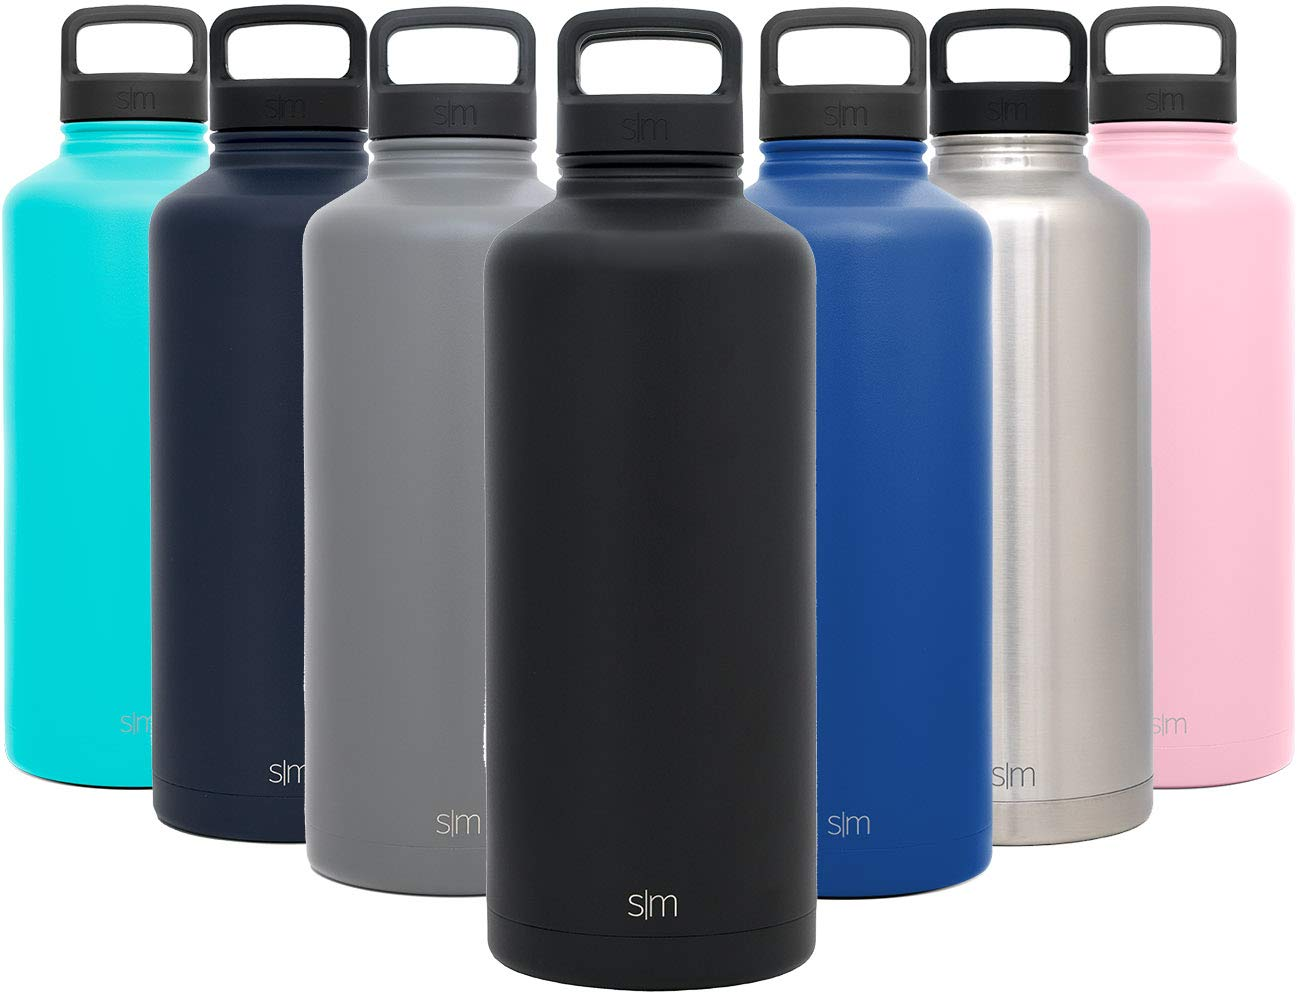 Simple Modern 84oz Summit Water Bottle - Stainless Steel Half Gallon Flask +2 Lids - Wide Mouth Double Wall Vacuum Insulated Black Leakproof - Midnight Black